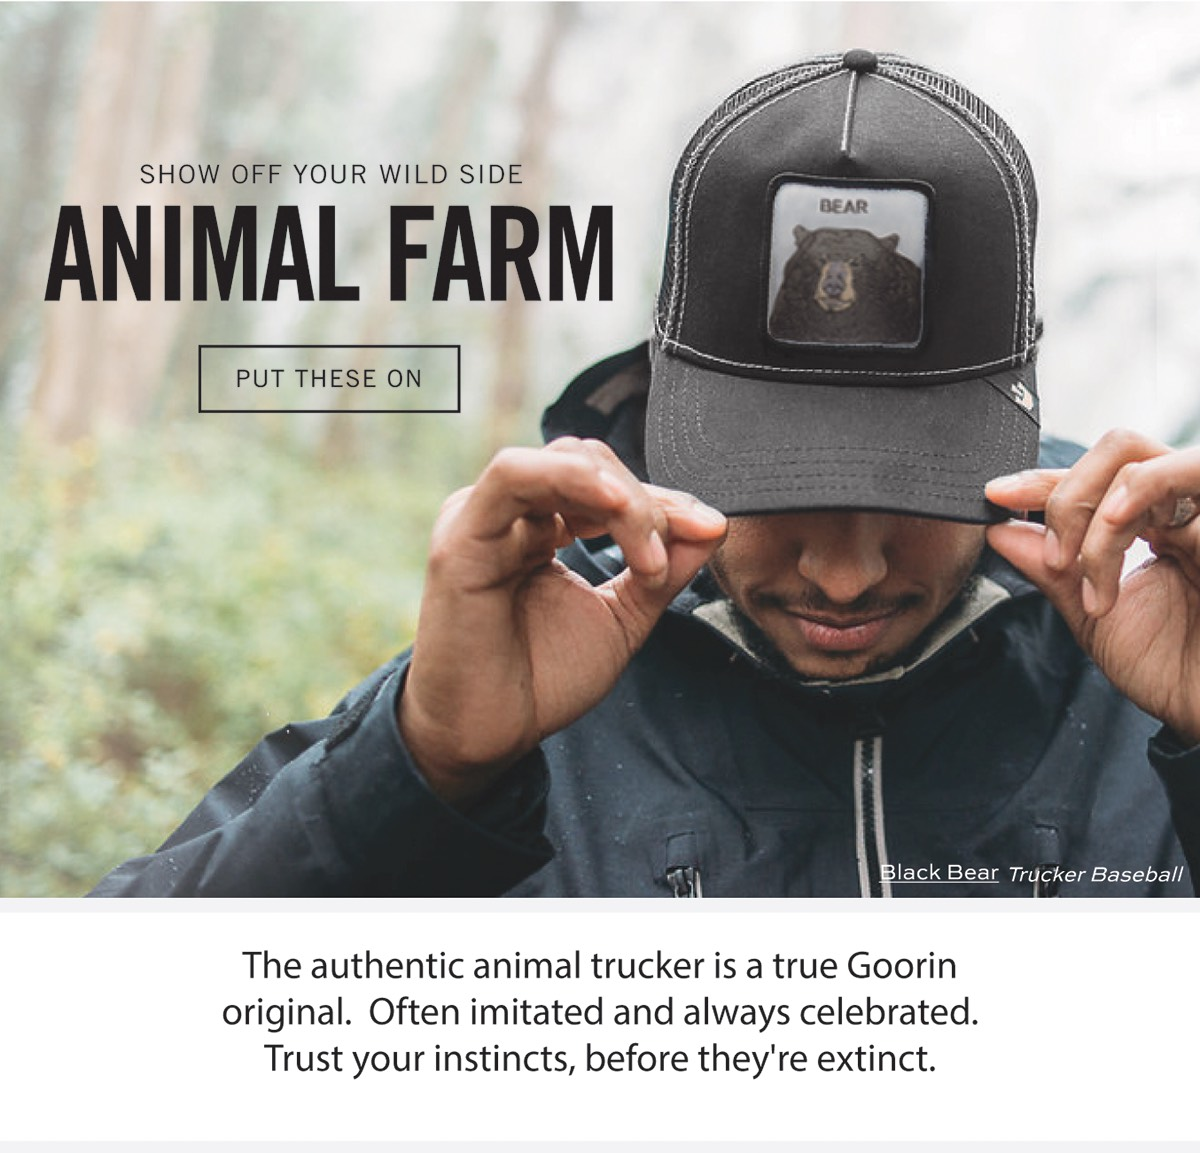 a80a071a Show off your wild side | ANIMAL FARM | PUT THESE ON | The authentic animal